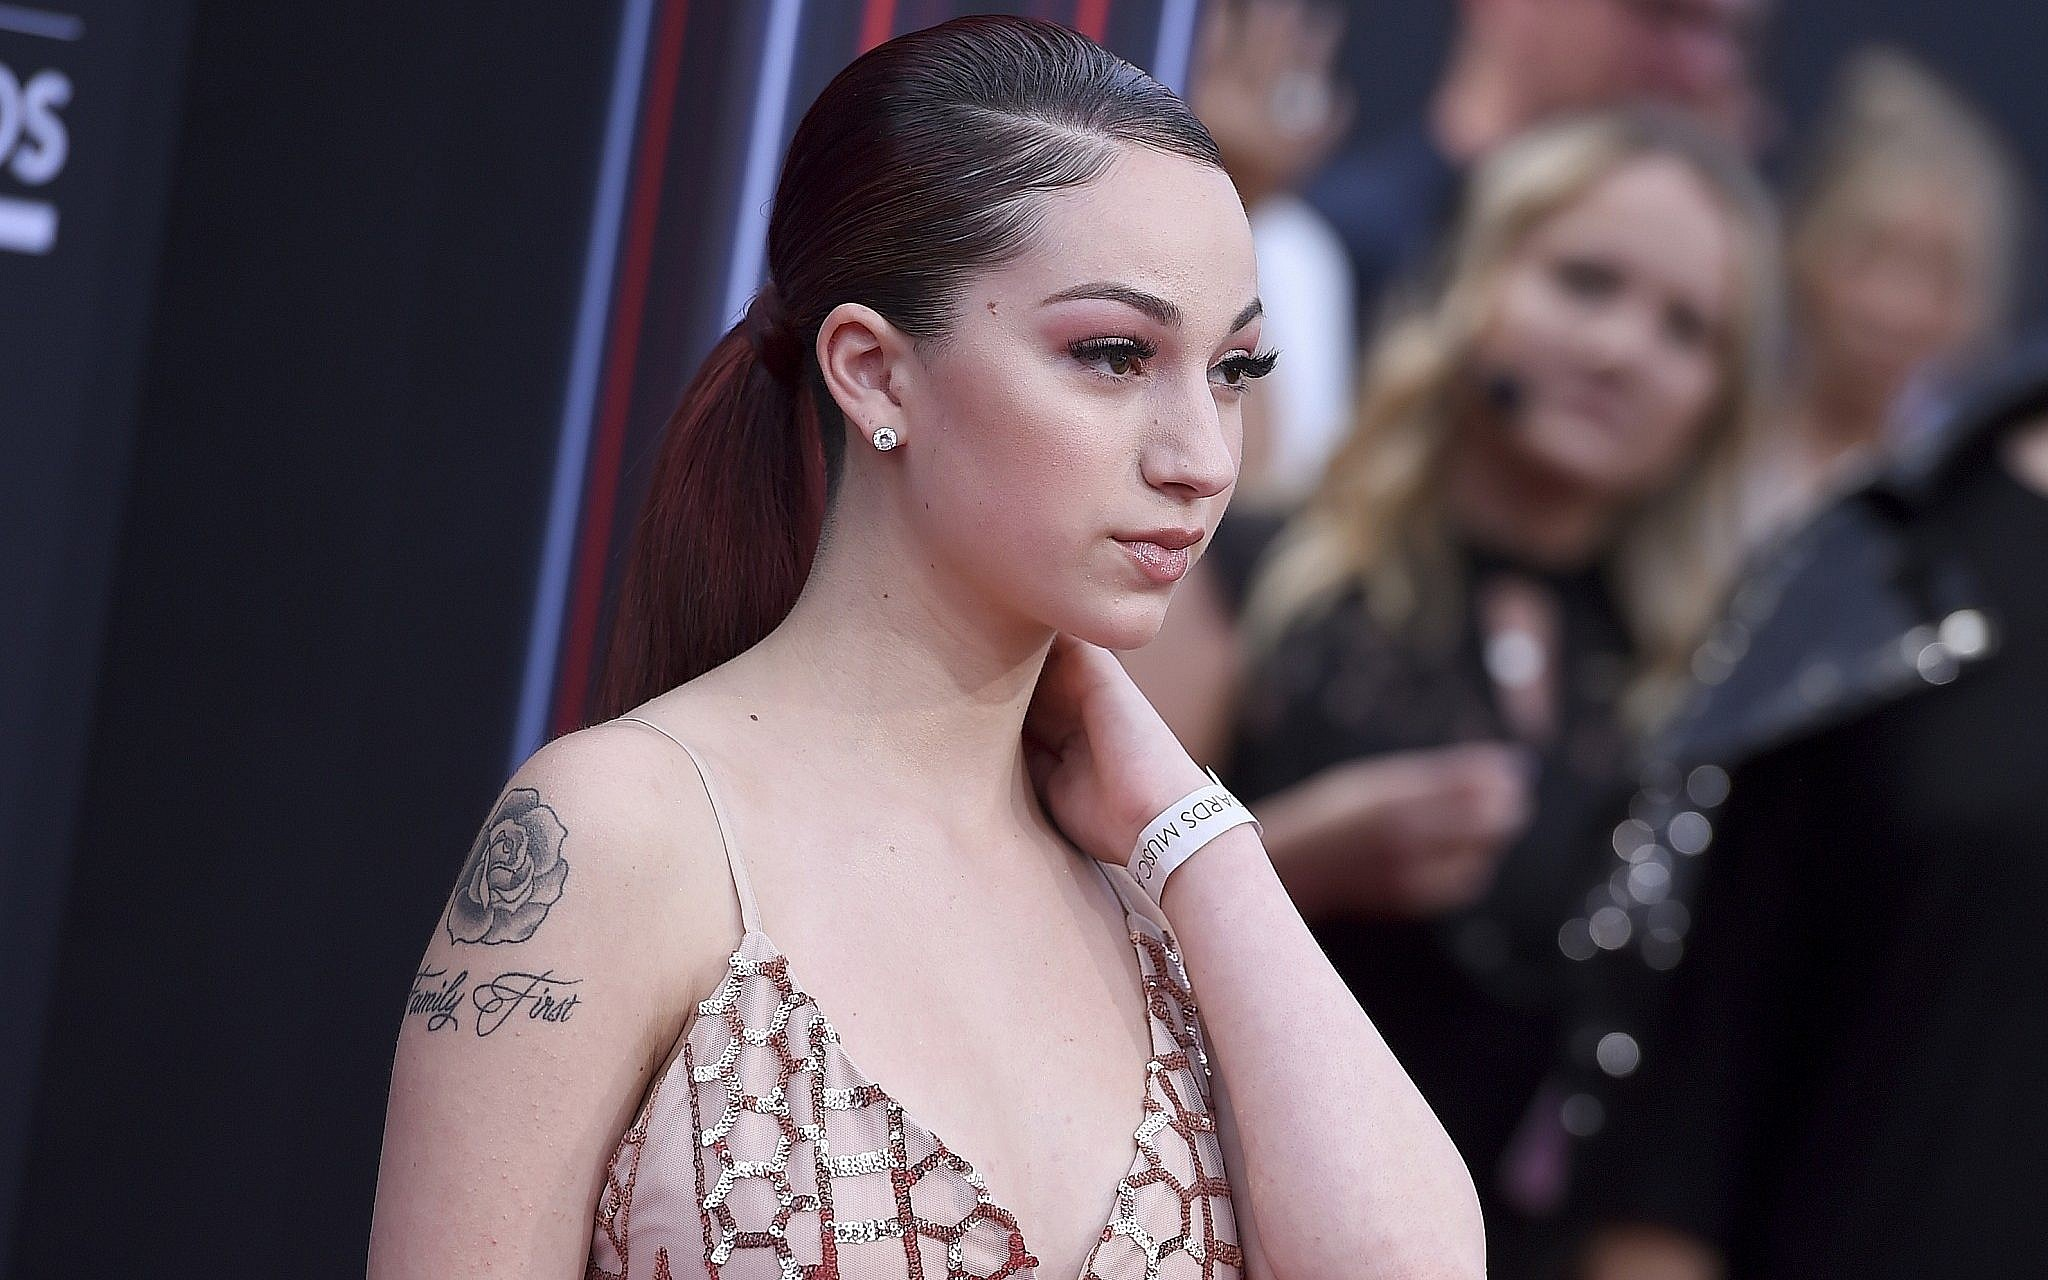 Jordan nixes rapper Bhad Bhabie gig over Israel support | The Times